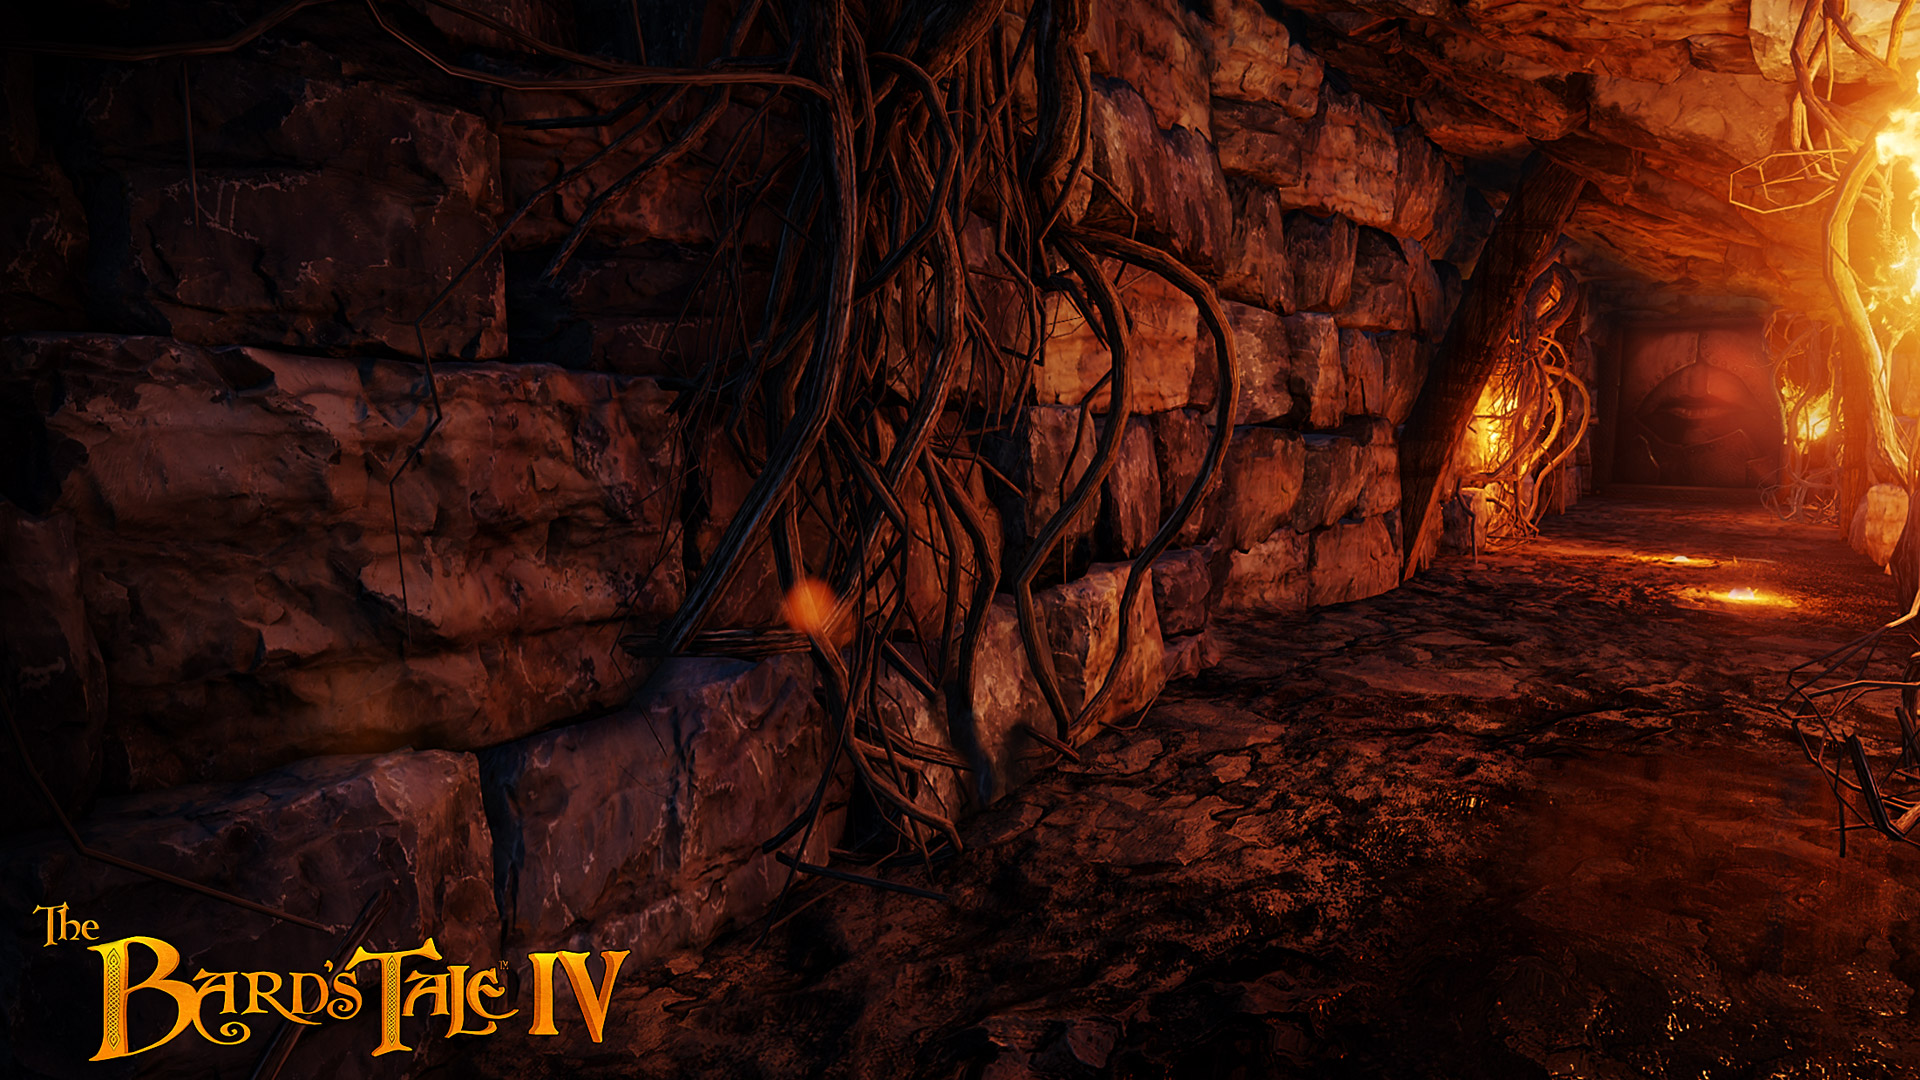 Free The Bards Tale IV Wallpaper in 1920x1080